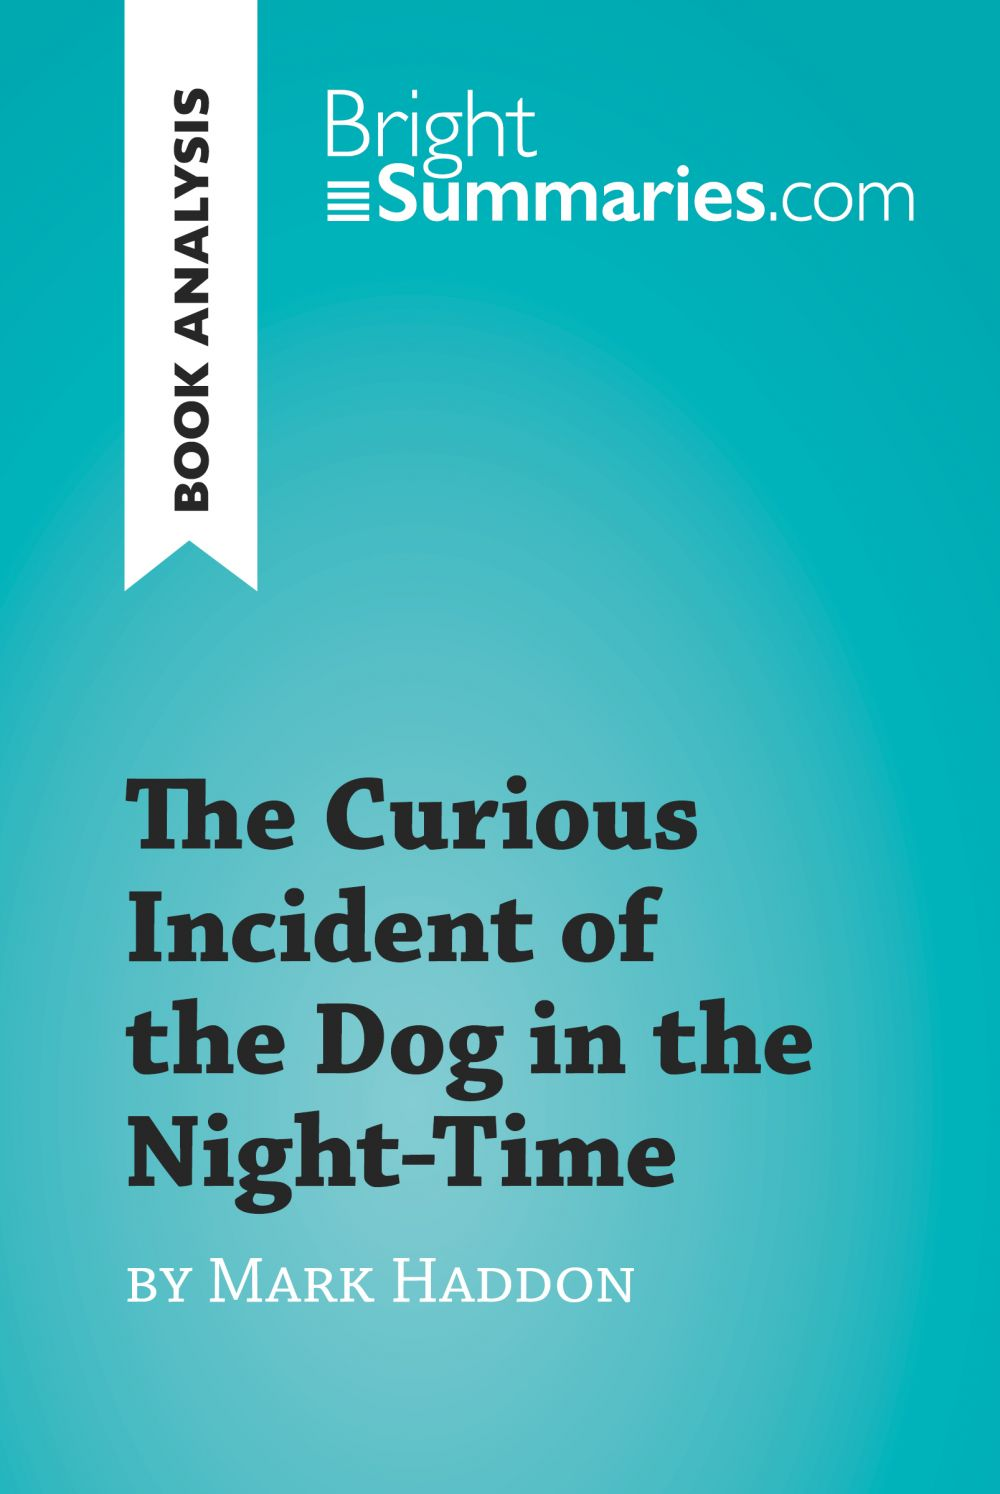 The Curious Incident of the Dog in the Night-Time by Mark Haddon (Book Analysis)